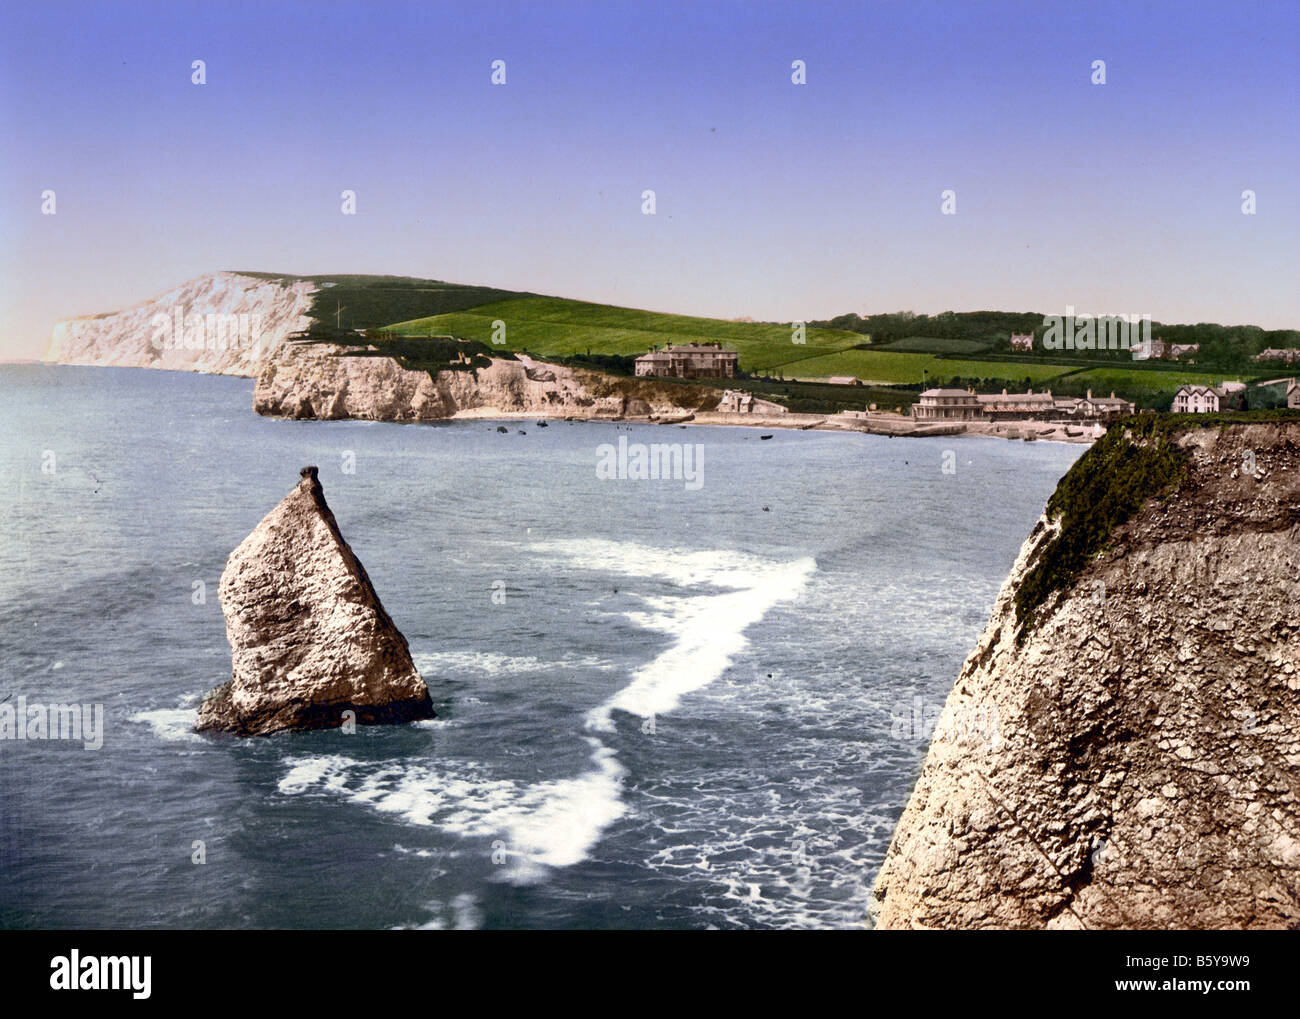 Stag Rock, Isle of Wight, England - Stock Image